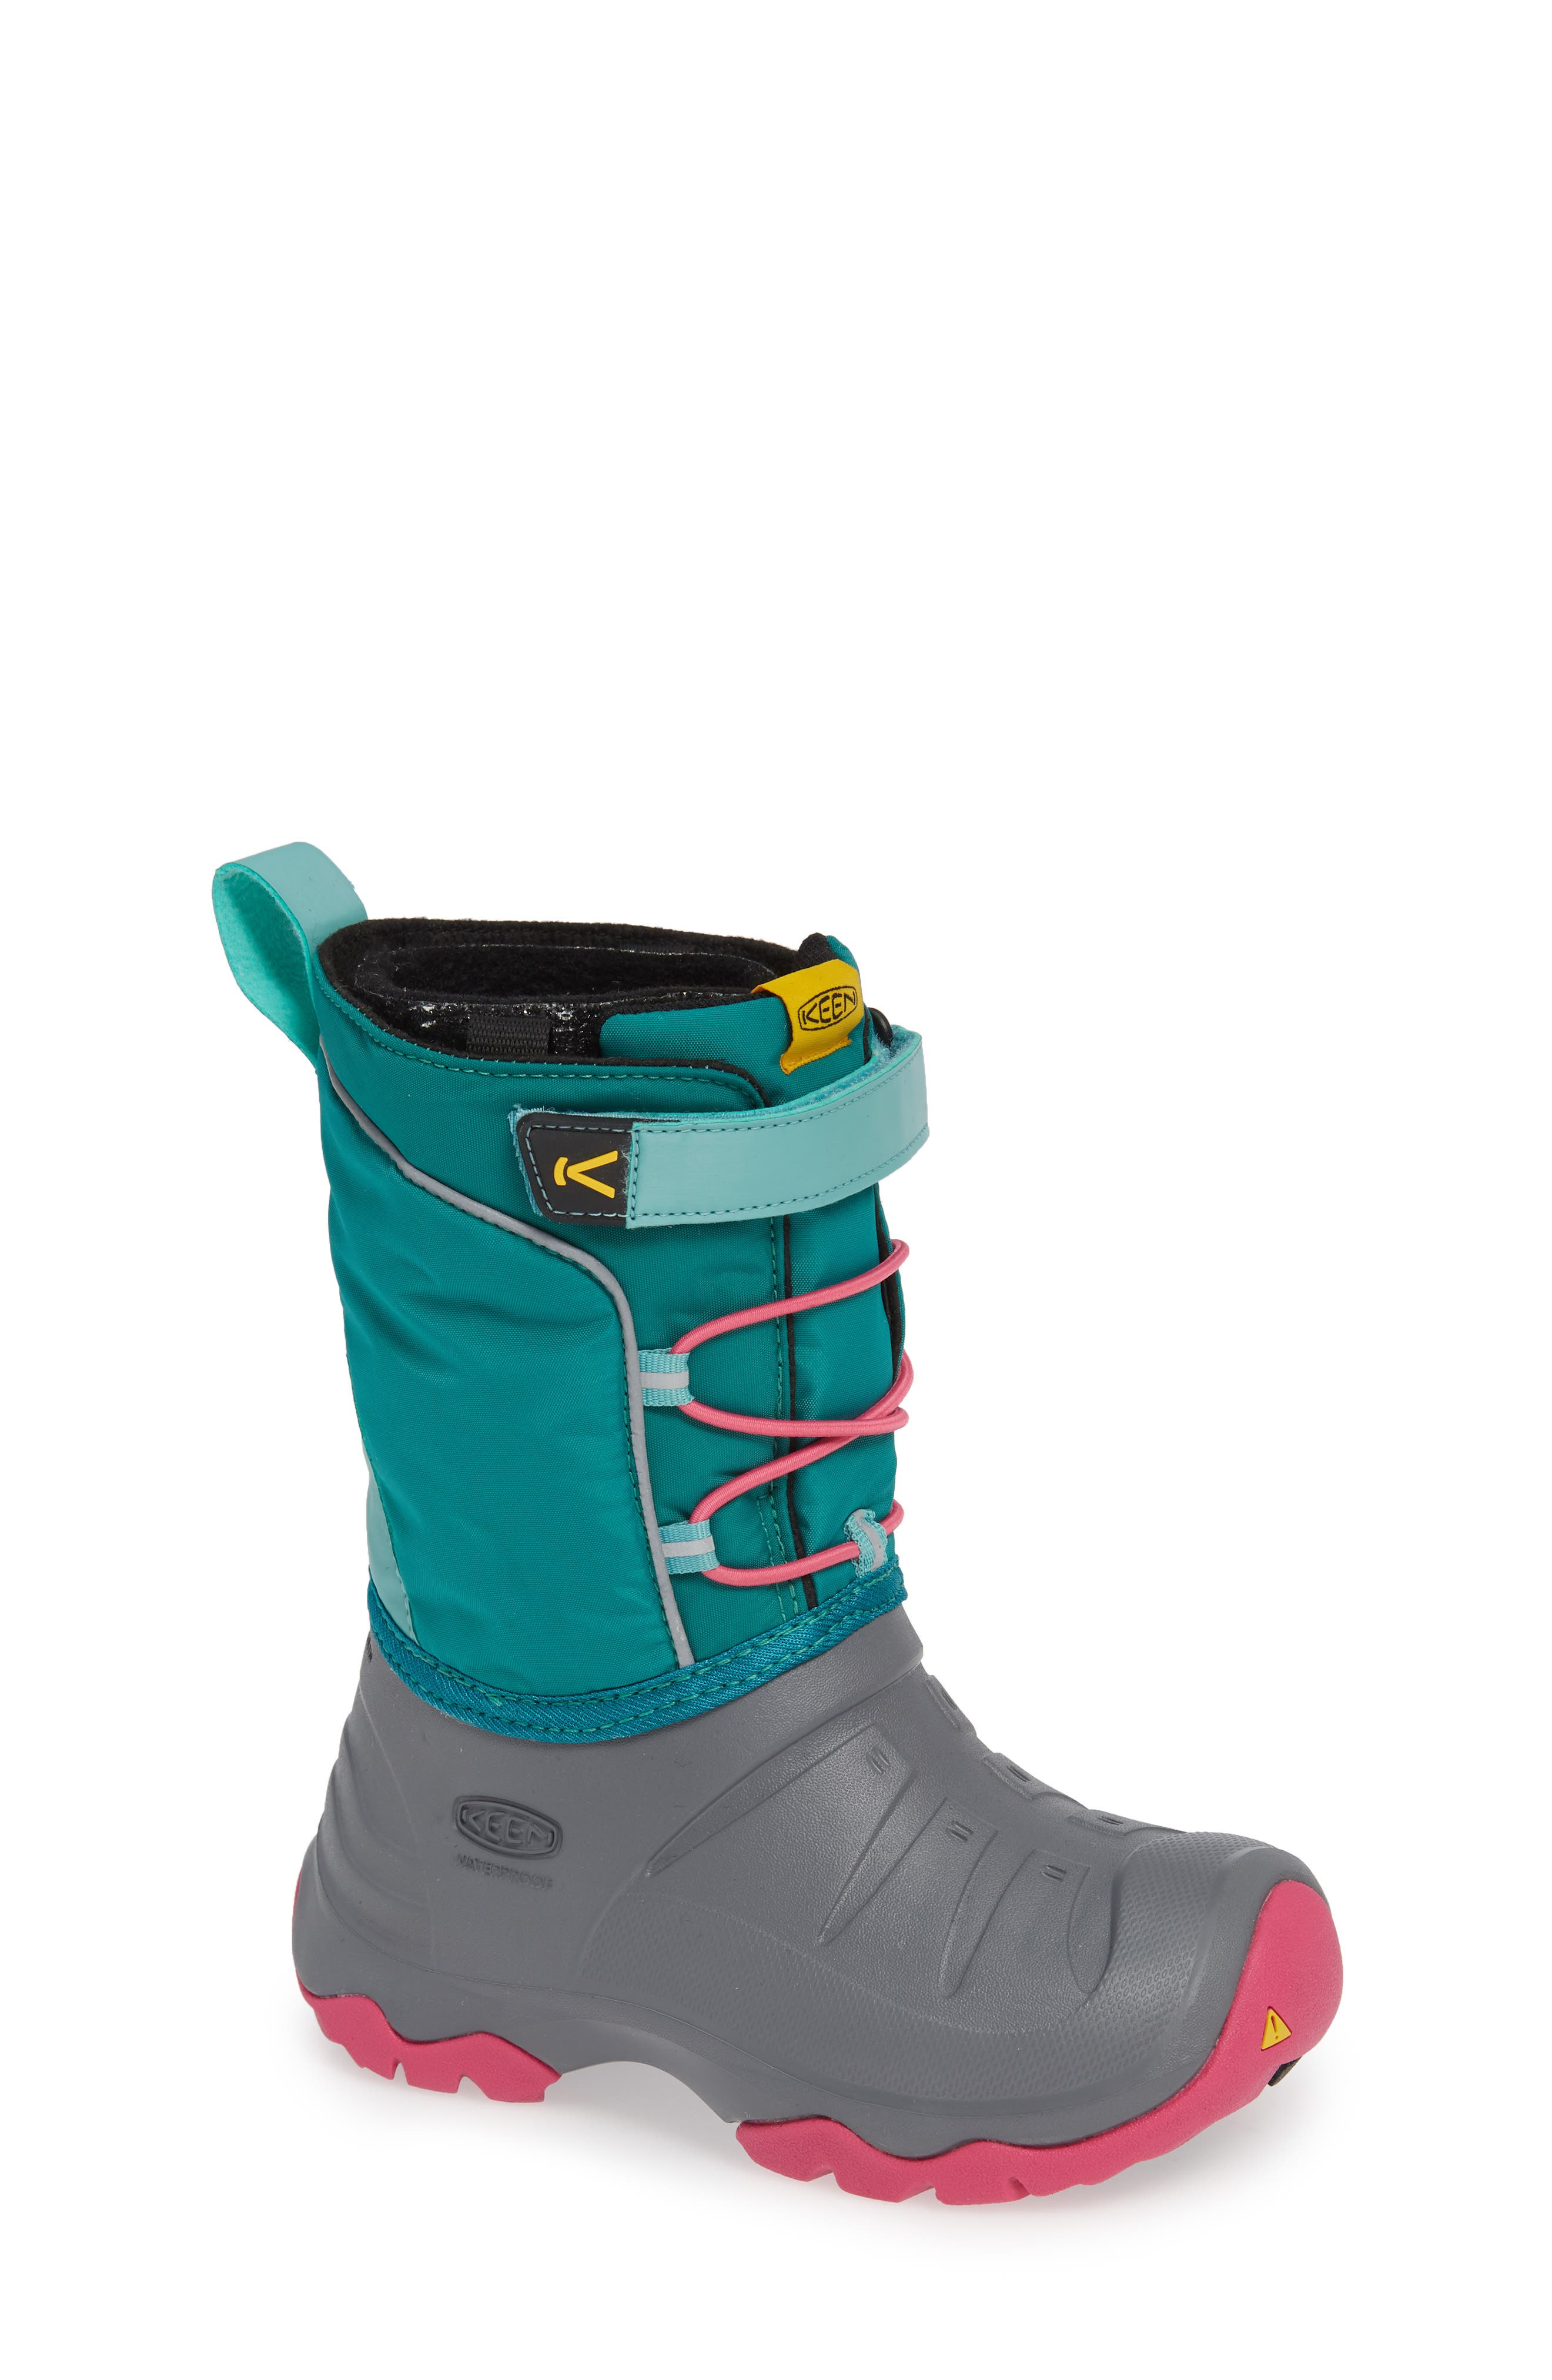 Toddler Keen Lumi Waterproof Boot, Blue/green